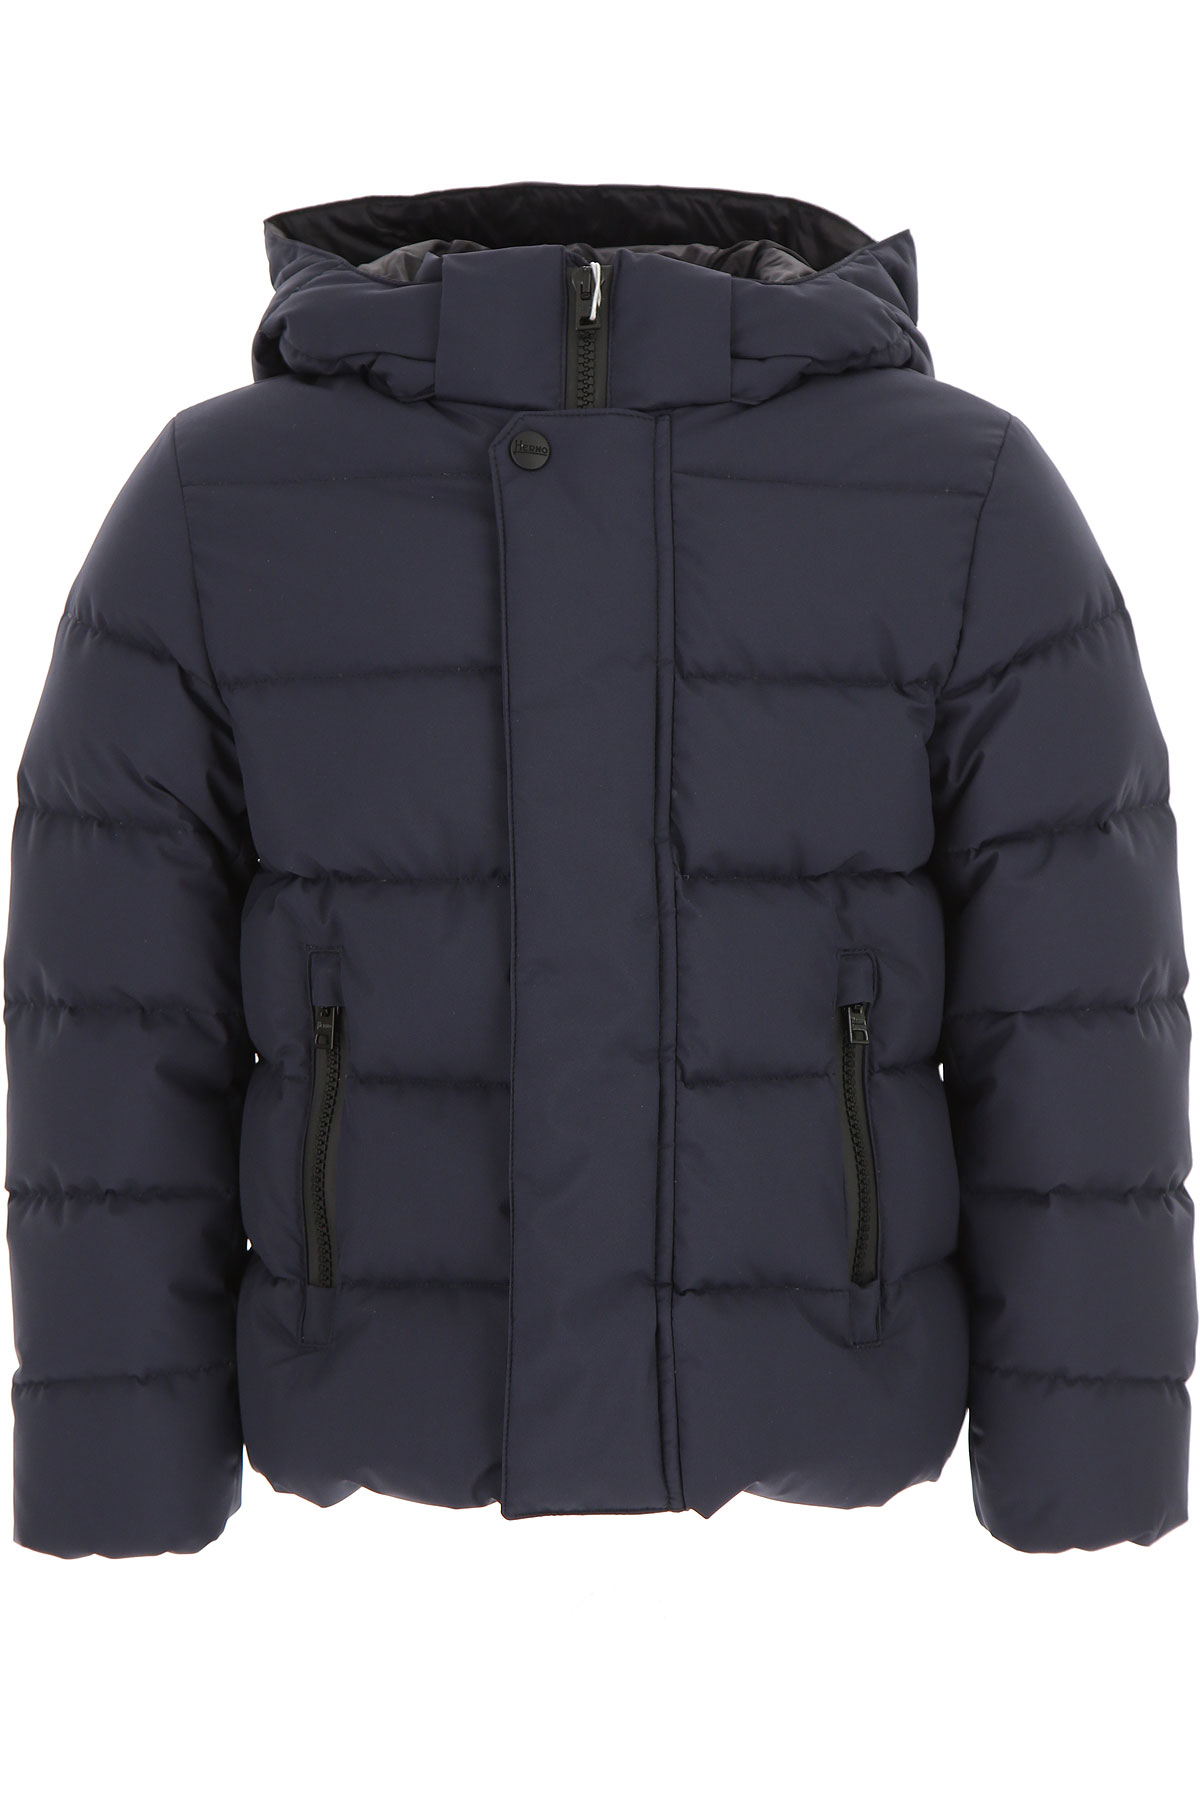 Image of Herno Boys Down Jacket for Kids, Puffer Ski Jacket, Navy Blue, polyester, 2017, 10Y 4Y 6Y 8Y